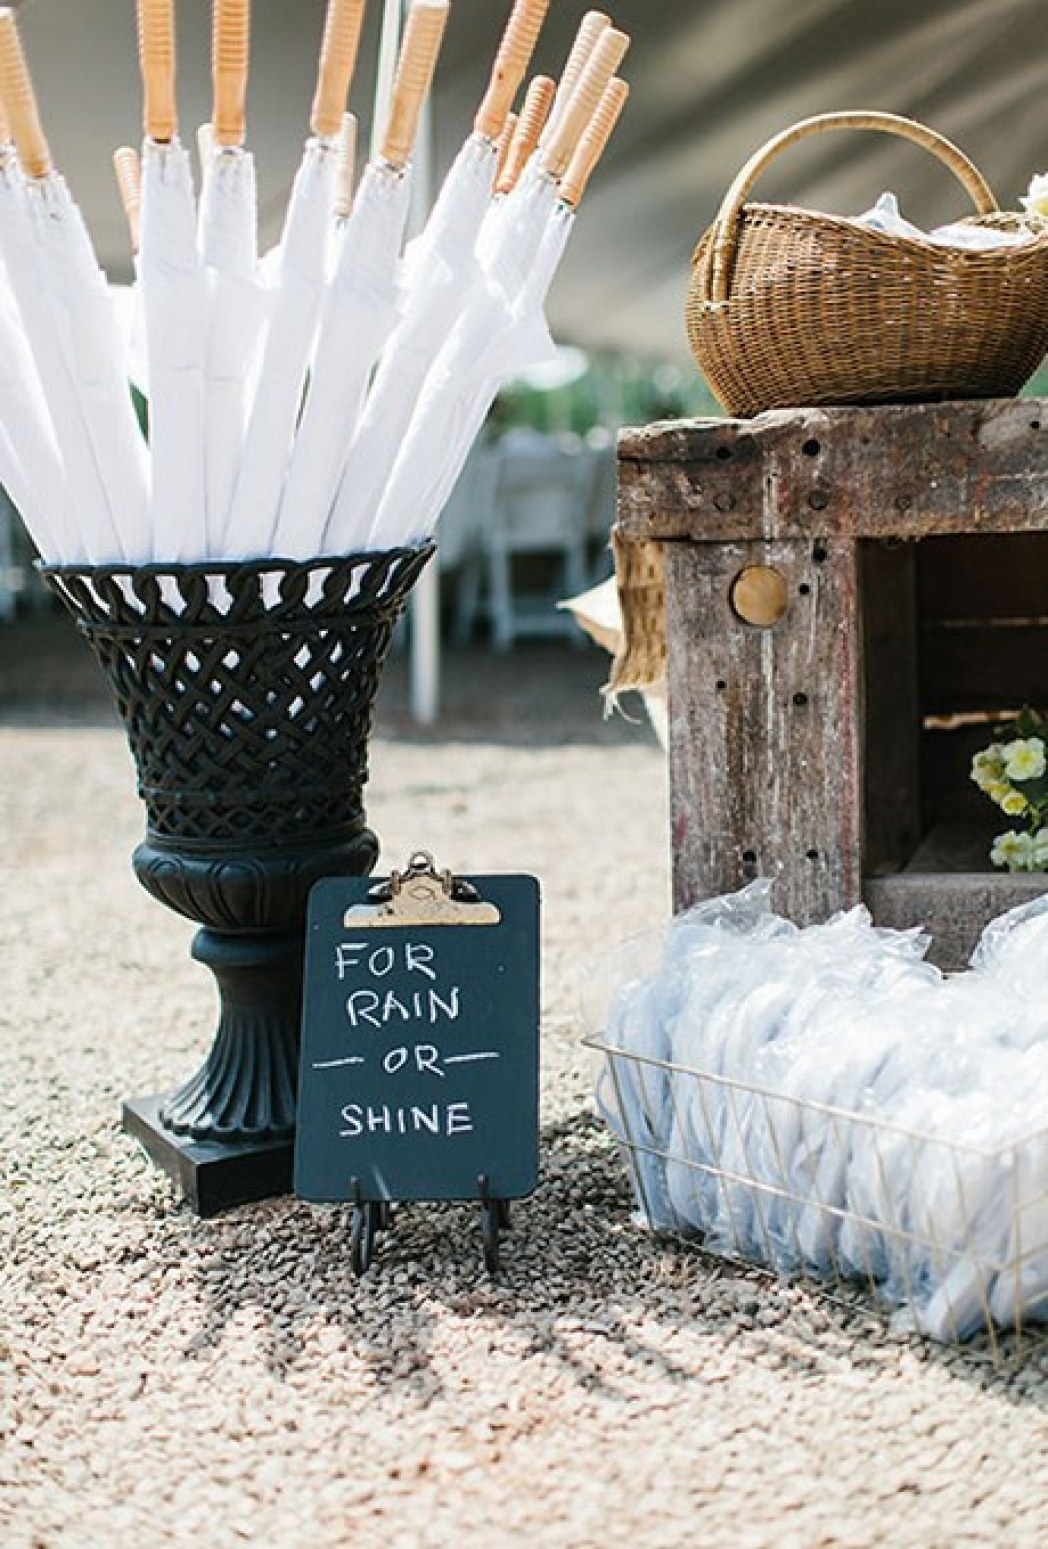 2015_bridescom-Editorial_Images-06-backyard-wedding-ideas-Large-backyard-wedding-ideas-colette-kulig